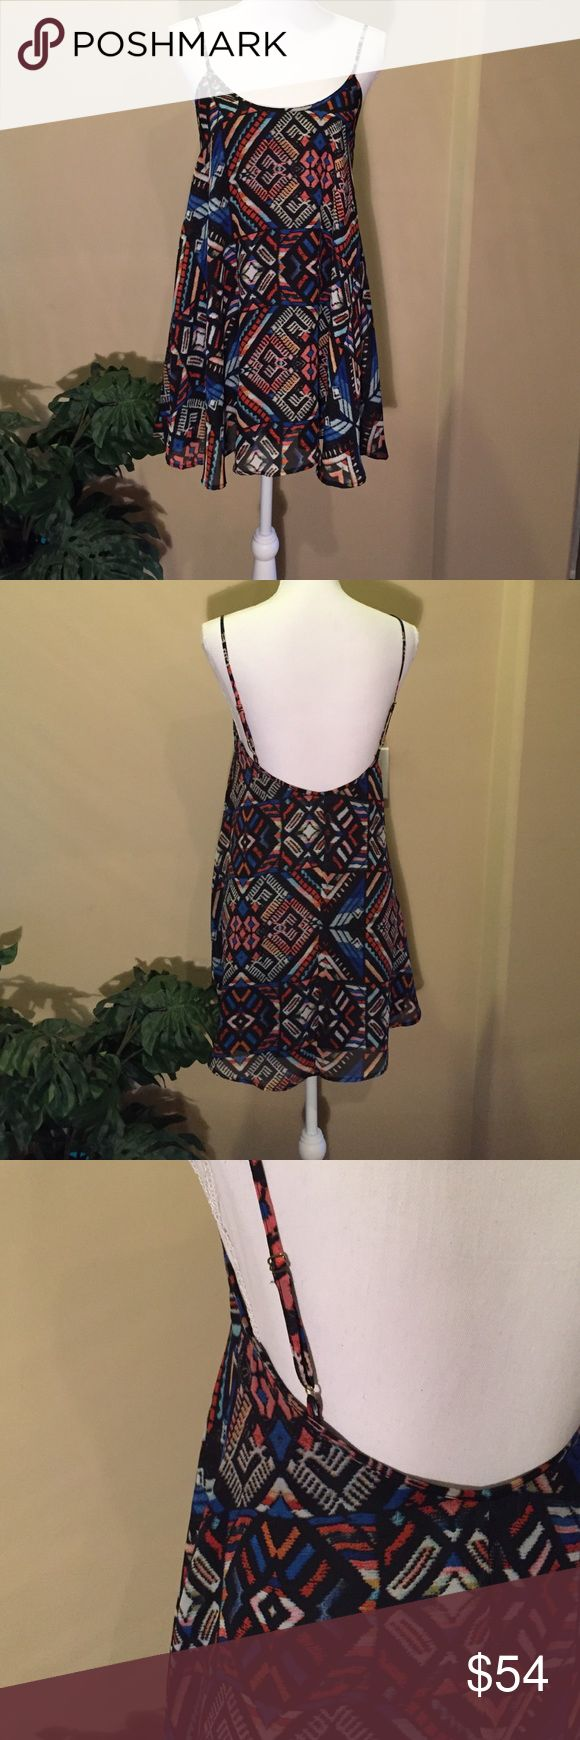 NEW Show Me Your Mumu Guatelala Bella Swing Dress New with tags: Mumu Guatelala Bella Dress with adjustable straps. Beautiful geometric pattern. Wear it as a dress or top. Lengthen the straps and wear it over a bando bra. Adorable. 100% polyester. Fully lined. Show Me Your MuMu Dresses Mini